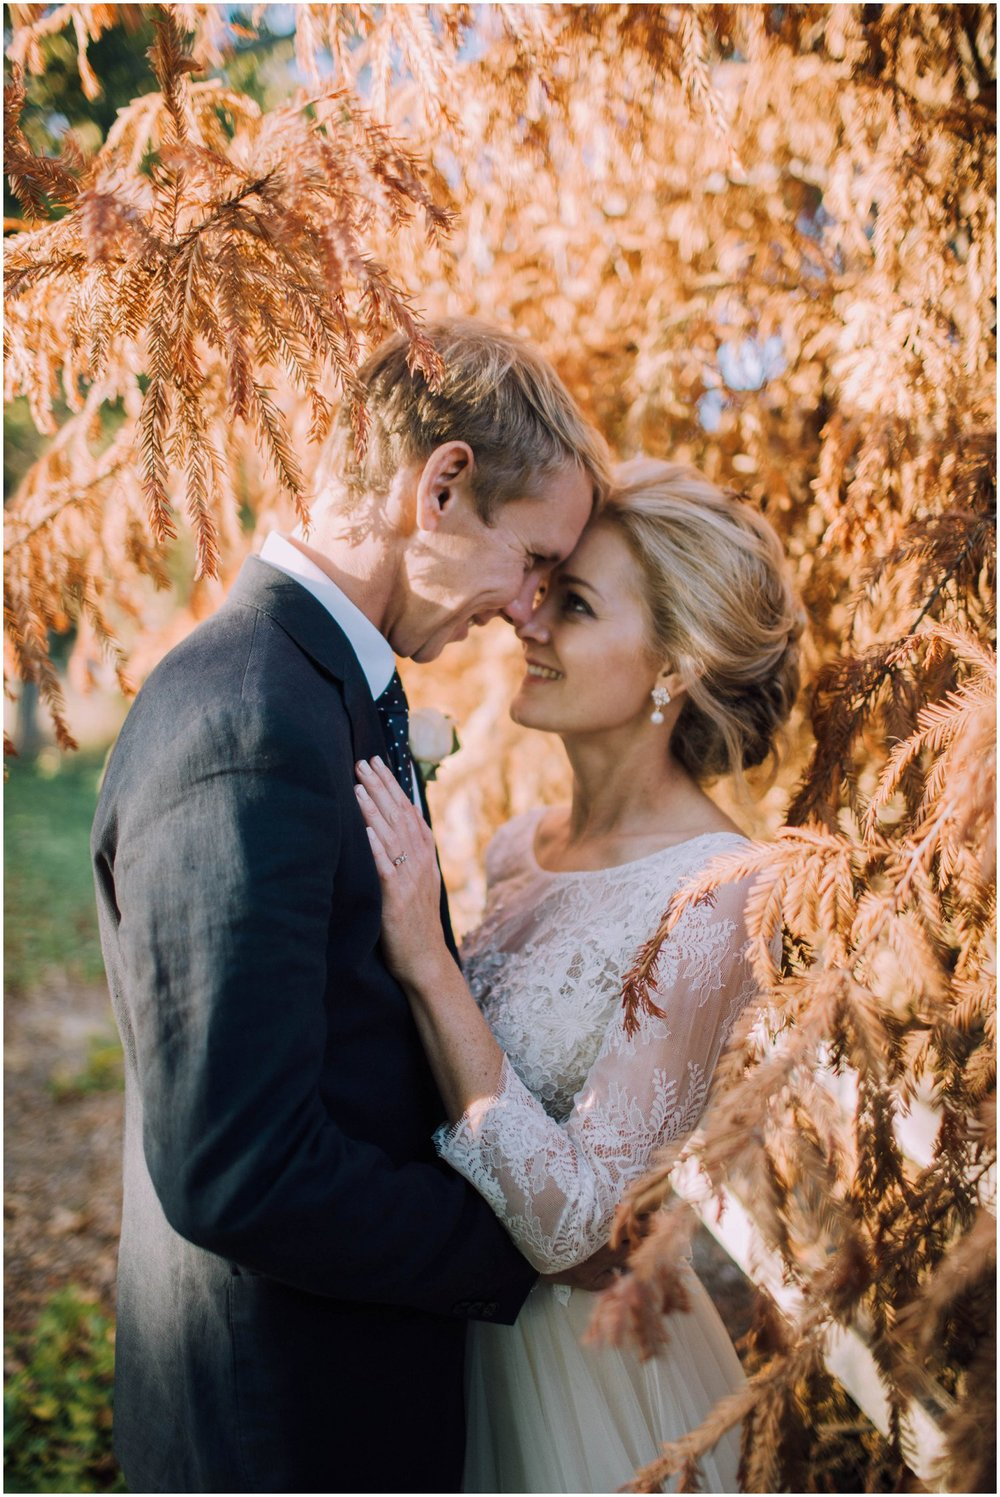 Top Wedding Photographer Cape Town South Africa Artistic Creative Documentary Wedding Photography Rue Kruger_0748.jpg